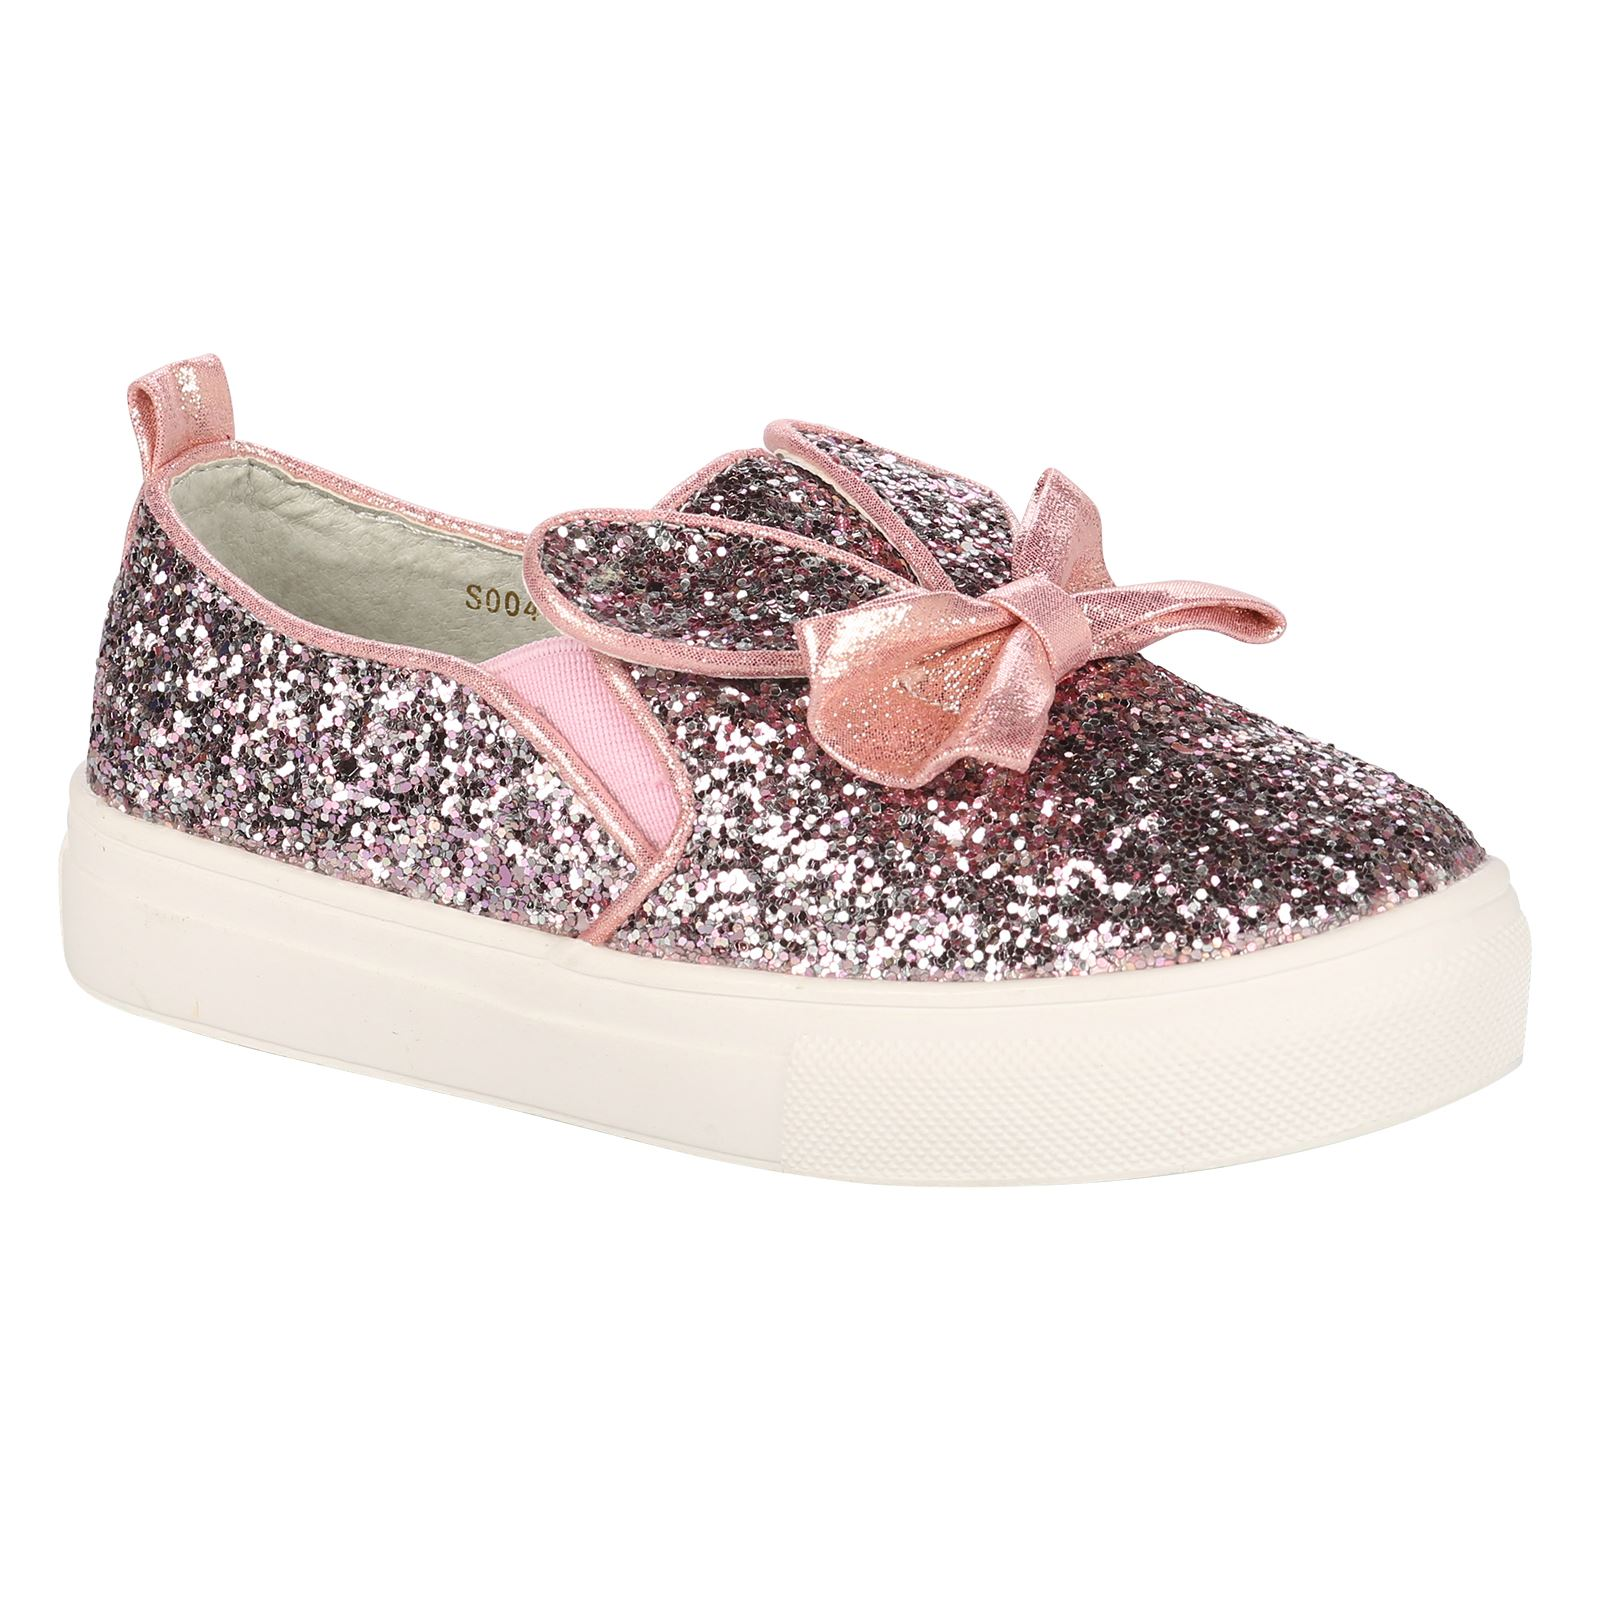 Shop for glitter shoes online at Target. Free shipping on purchases over $35 and save 5% every day with your Target REDcard.